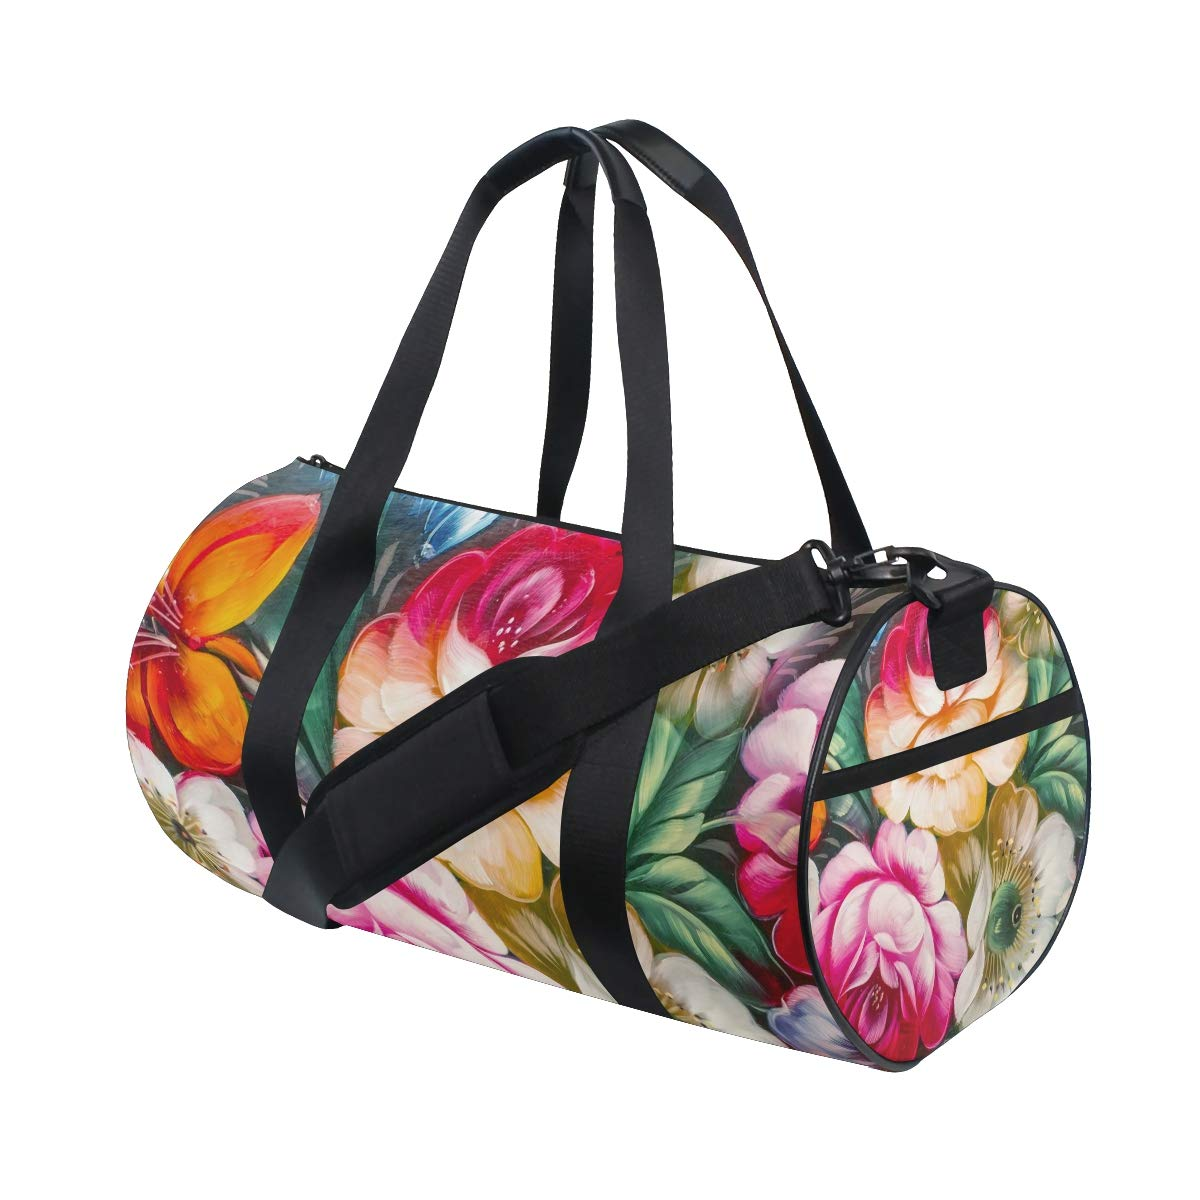 Flowers Yoga Sports Gym Duffle Bags Tote Sling Travel Bag Patterned Canvas with Pocket and Zipper For Men Women Bag